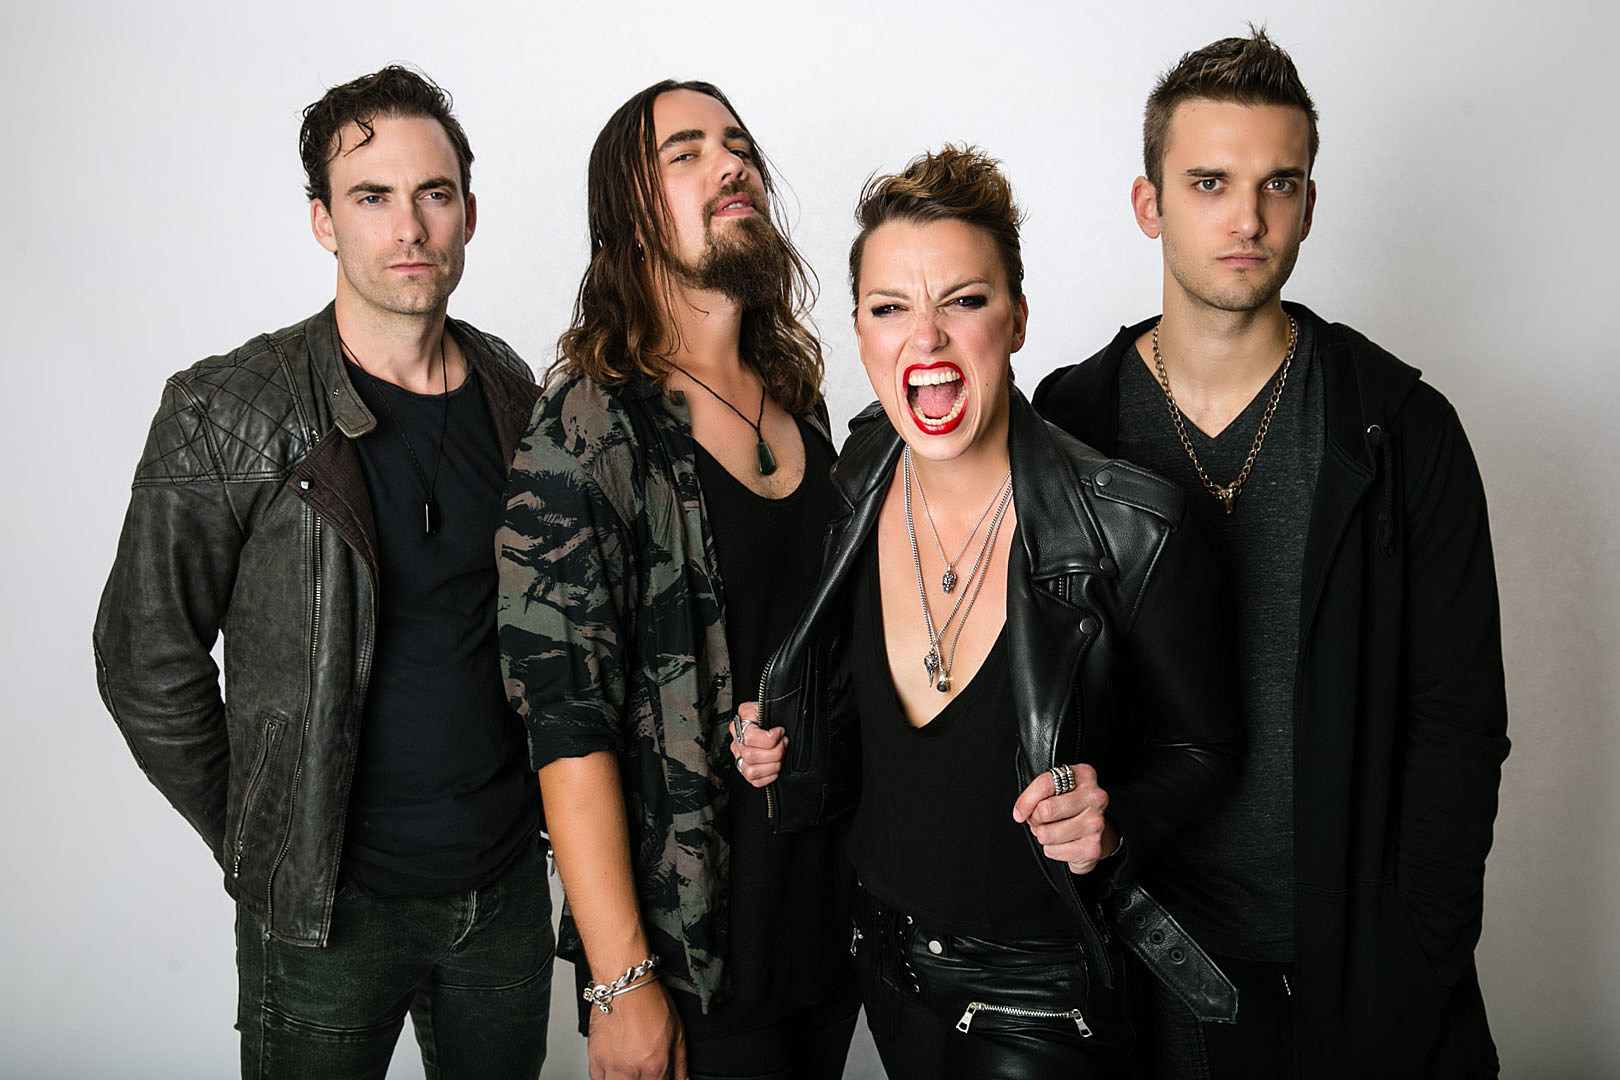 Halestorm Guitarist: 'If Music Was a City, Rock Would Be Down in the Ghetto'